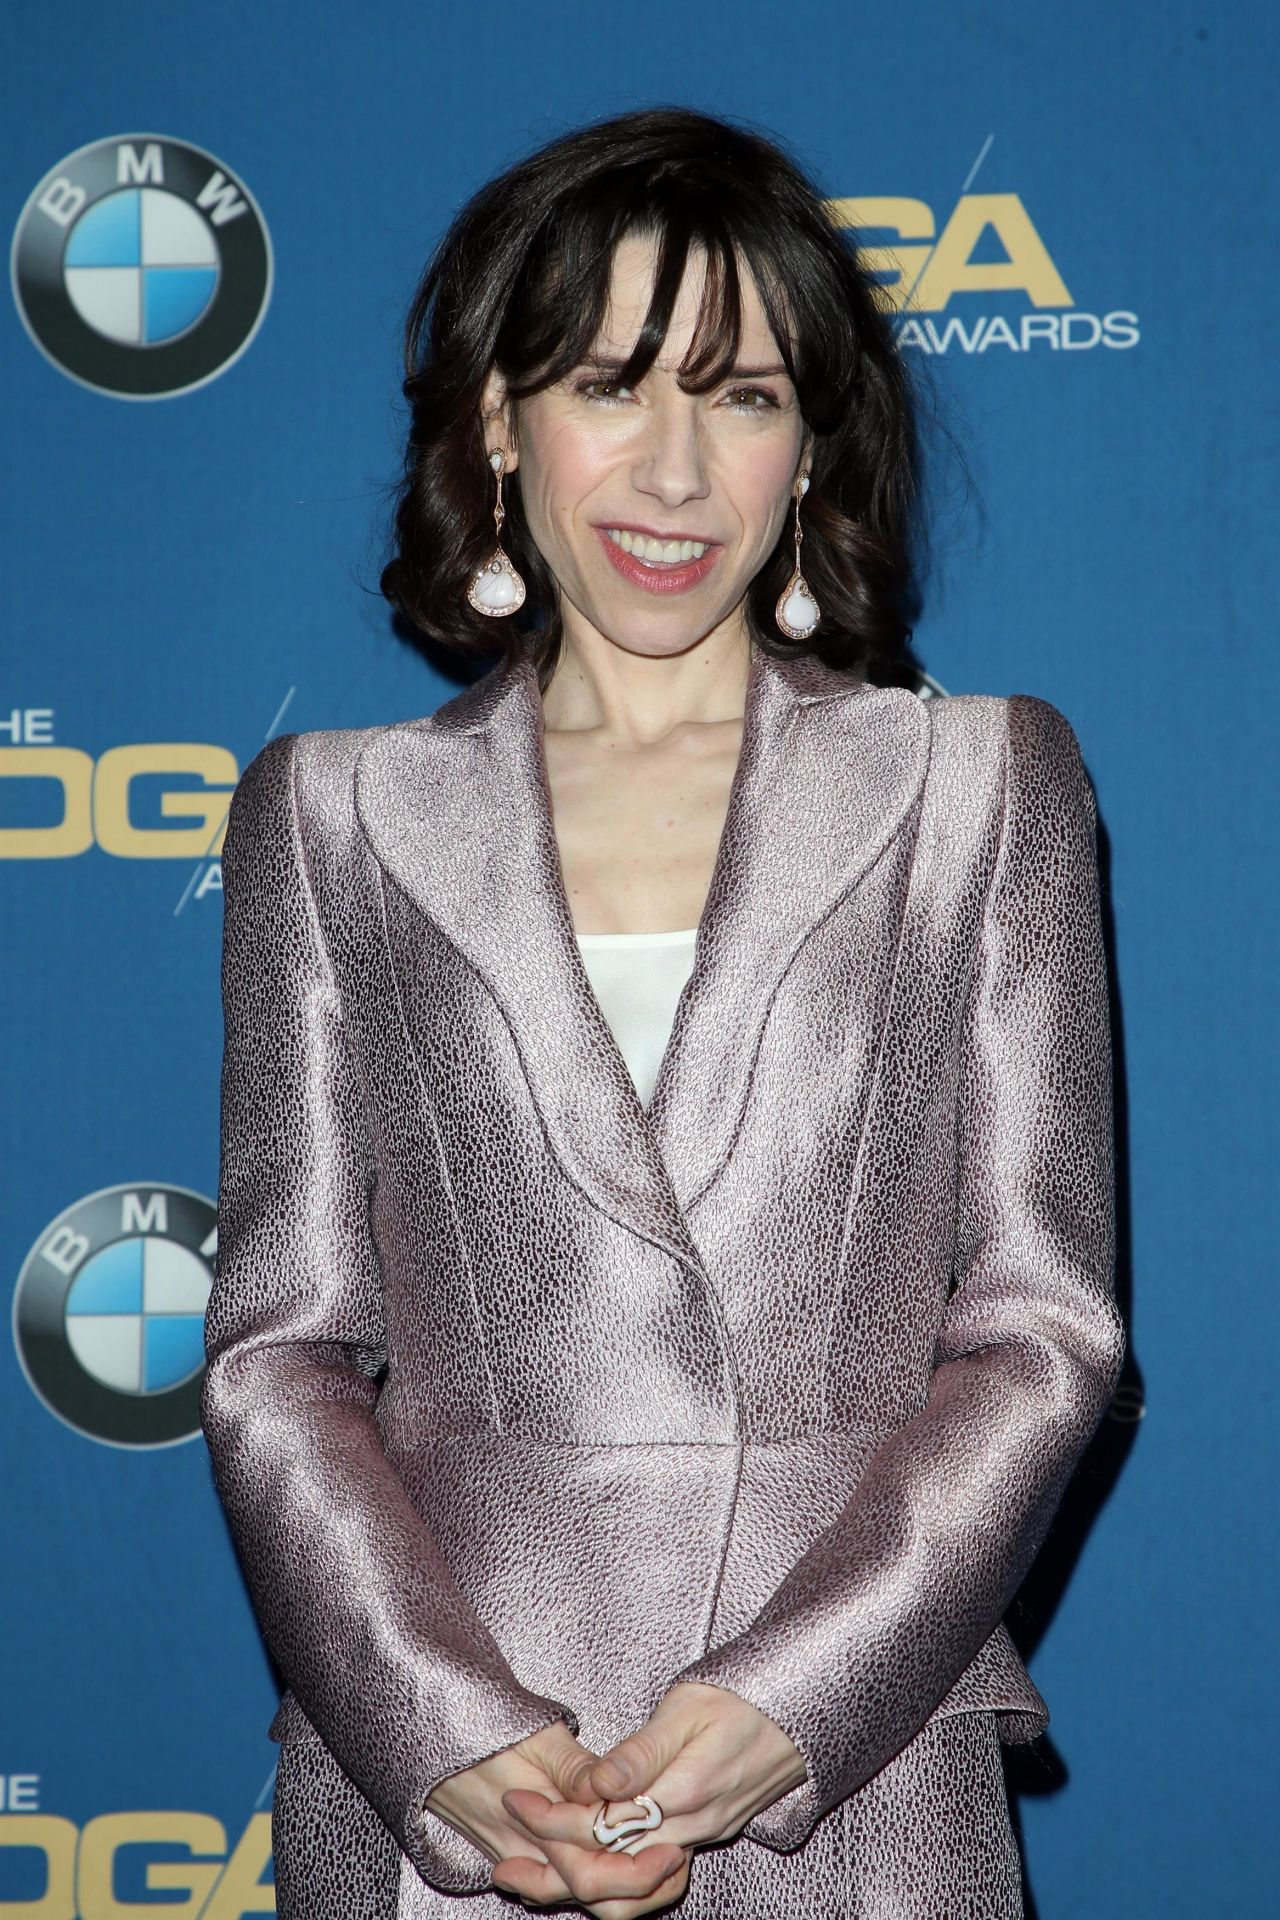 Sally Hawkins 2018 Dga Awards